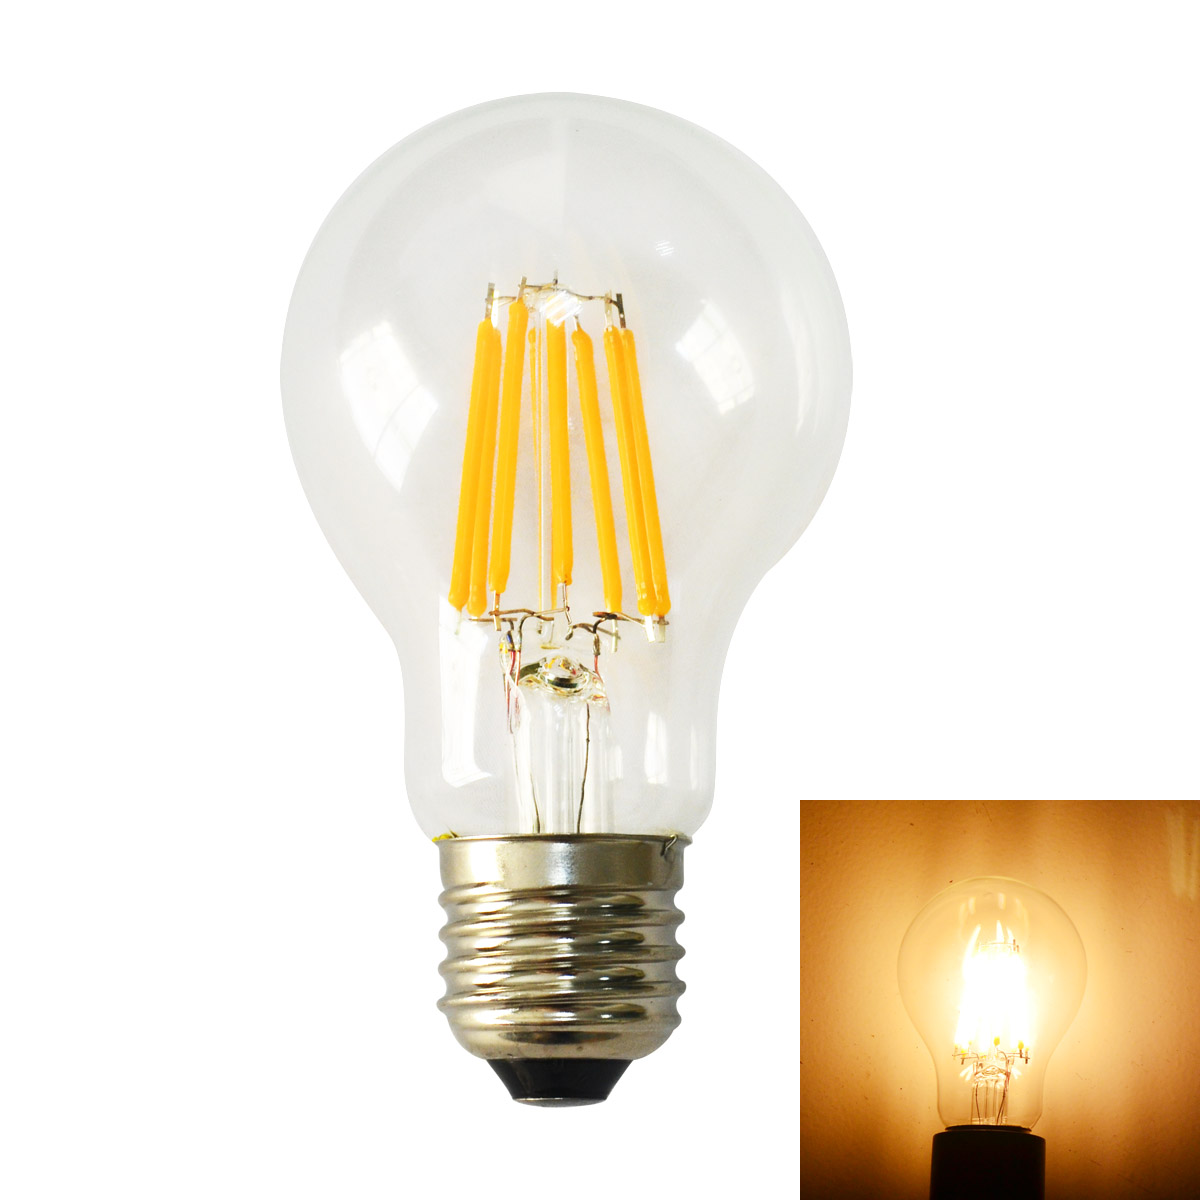 jiawen 8w 2700k warm white dimmable edison style led filament bulb ac220 240v in led bulbs. Black Bedroom Furniture Sets. Home Design Ideas